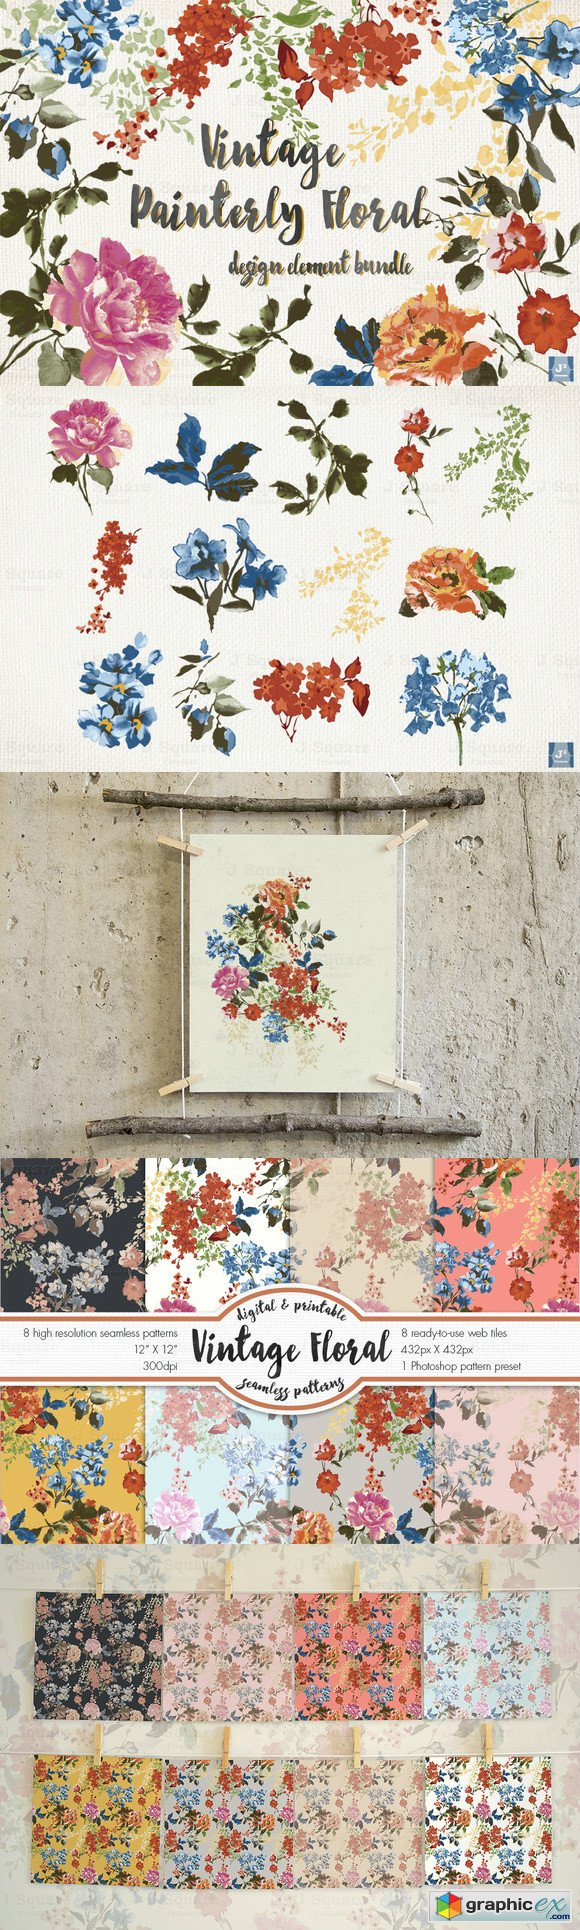 Vintage Floral Design Element Bundle